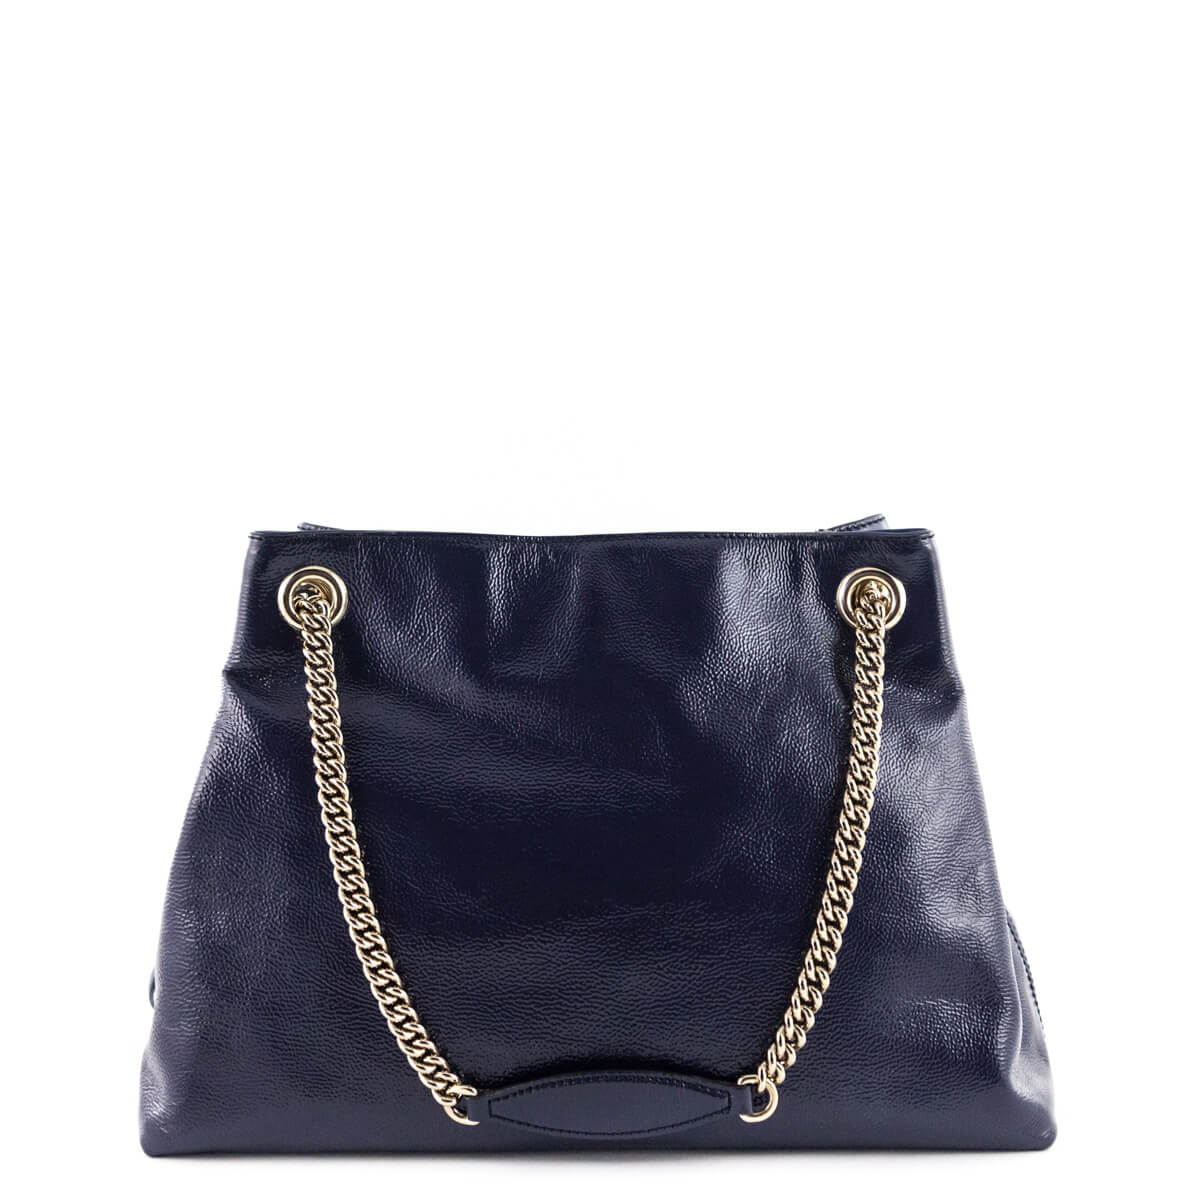 e5692801e8a ... Gucci Navy Patent Leather Medium Soho Shoulder Bag - LOVE that BAG - Preowned  Authentic Designer ...